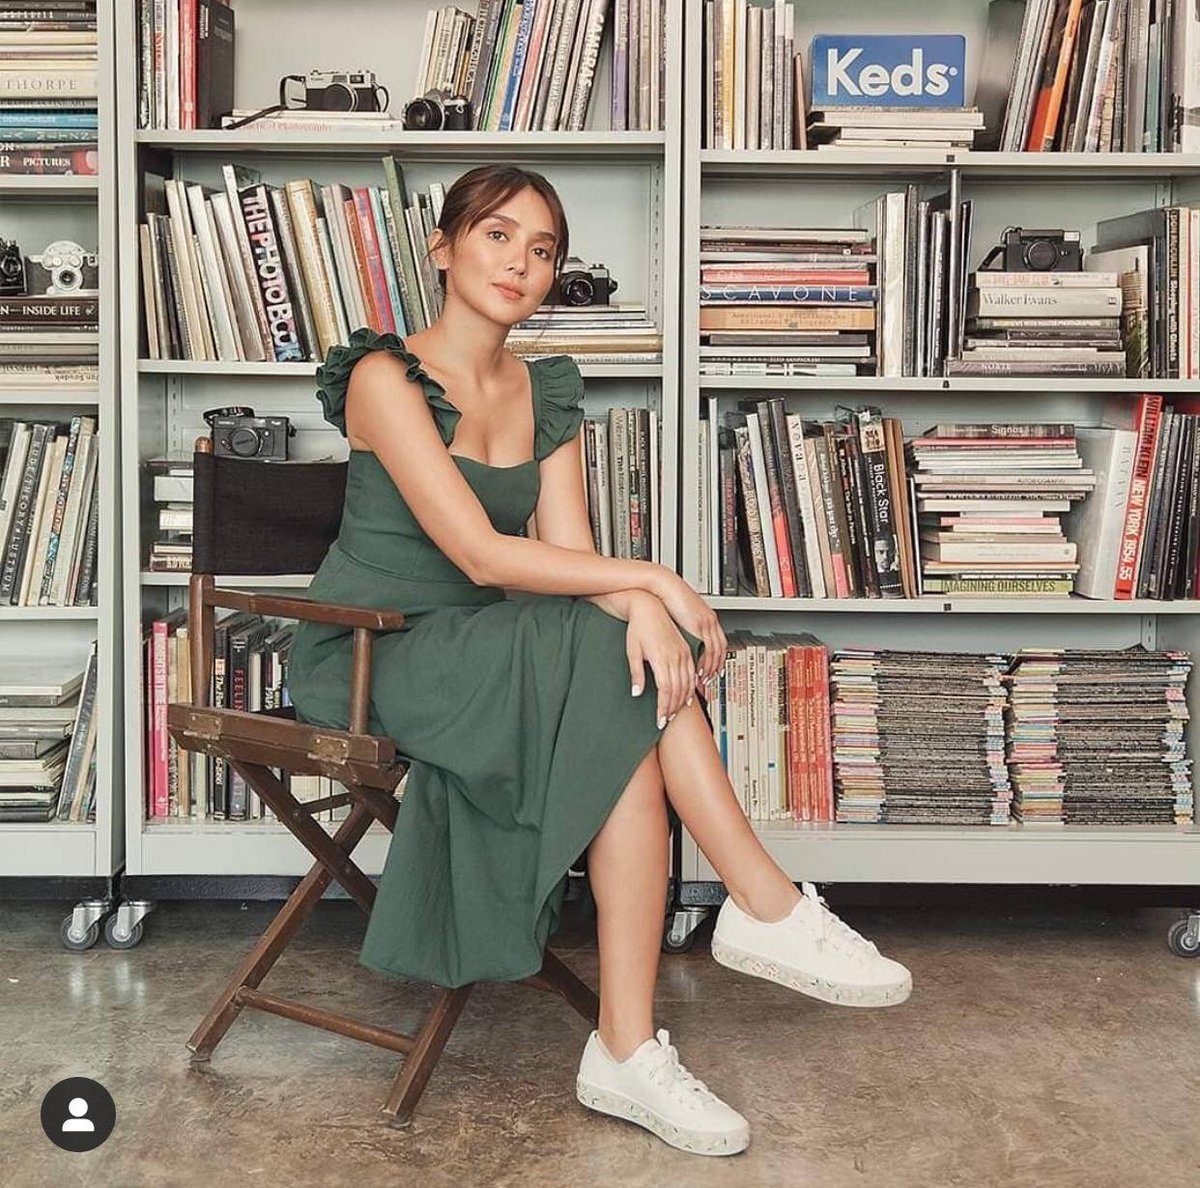 bernardokath: Sneaker game strong for 2021! 👟 Welcome the new year in style with a fresh pair from @KedsPH, available at Keds stores, online via , or through the Keds PH Viber community.   #kathforkeds #kedsstyle #womenmade